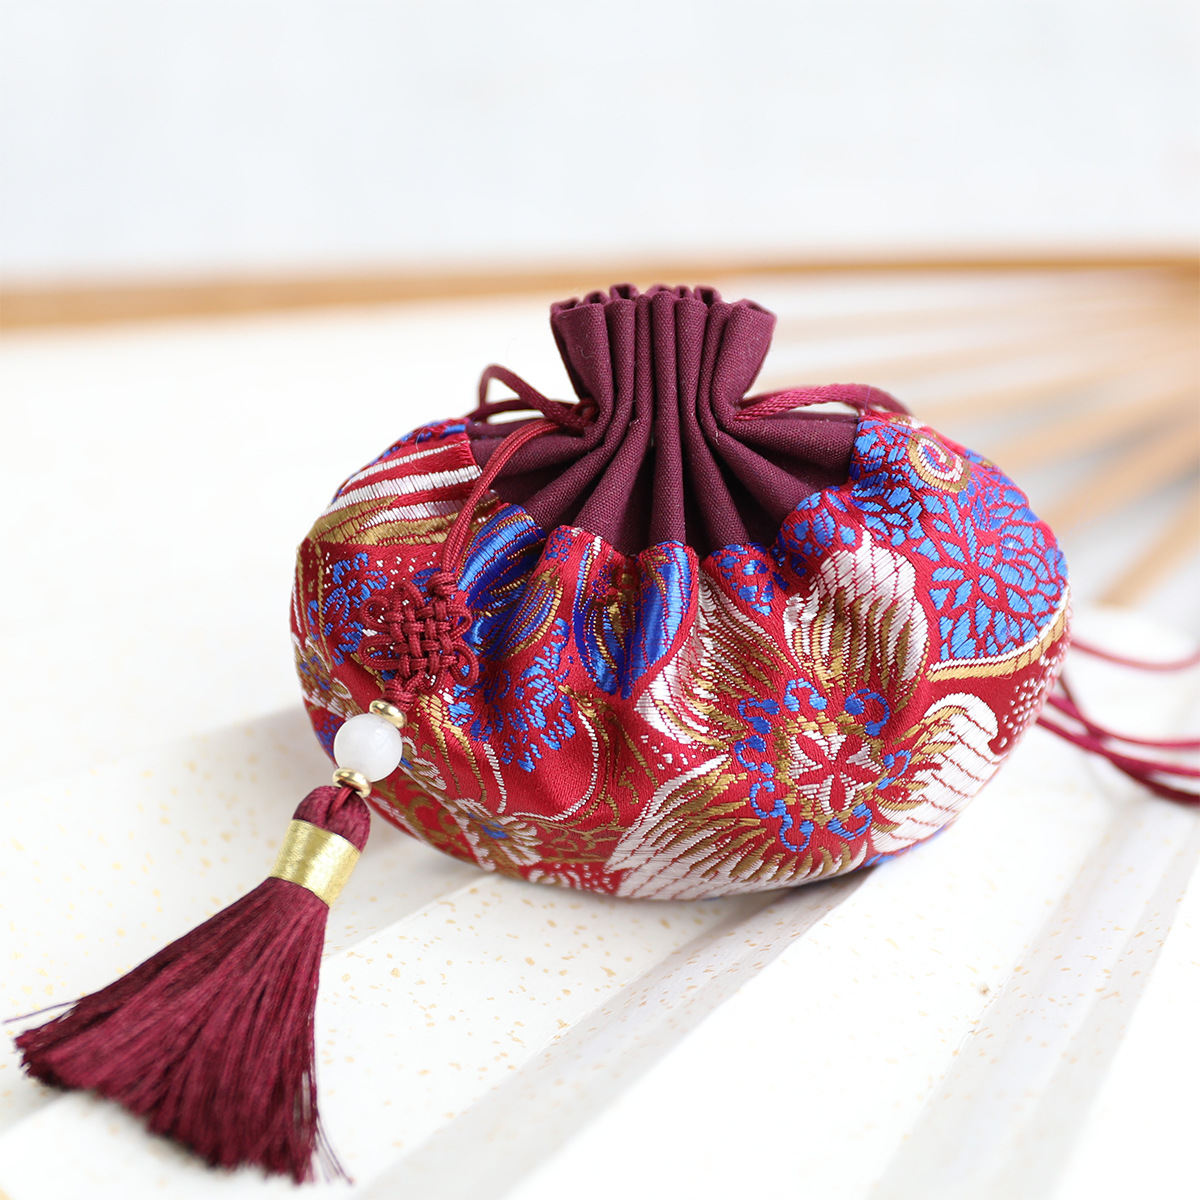 Cotton High Quality Splice Retro Flower Series Palace Sachet Bag Tassel Jewelry Bags Car Hanging Decoration Gift Bags